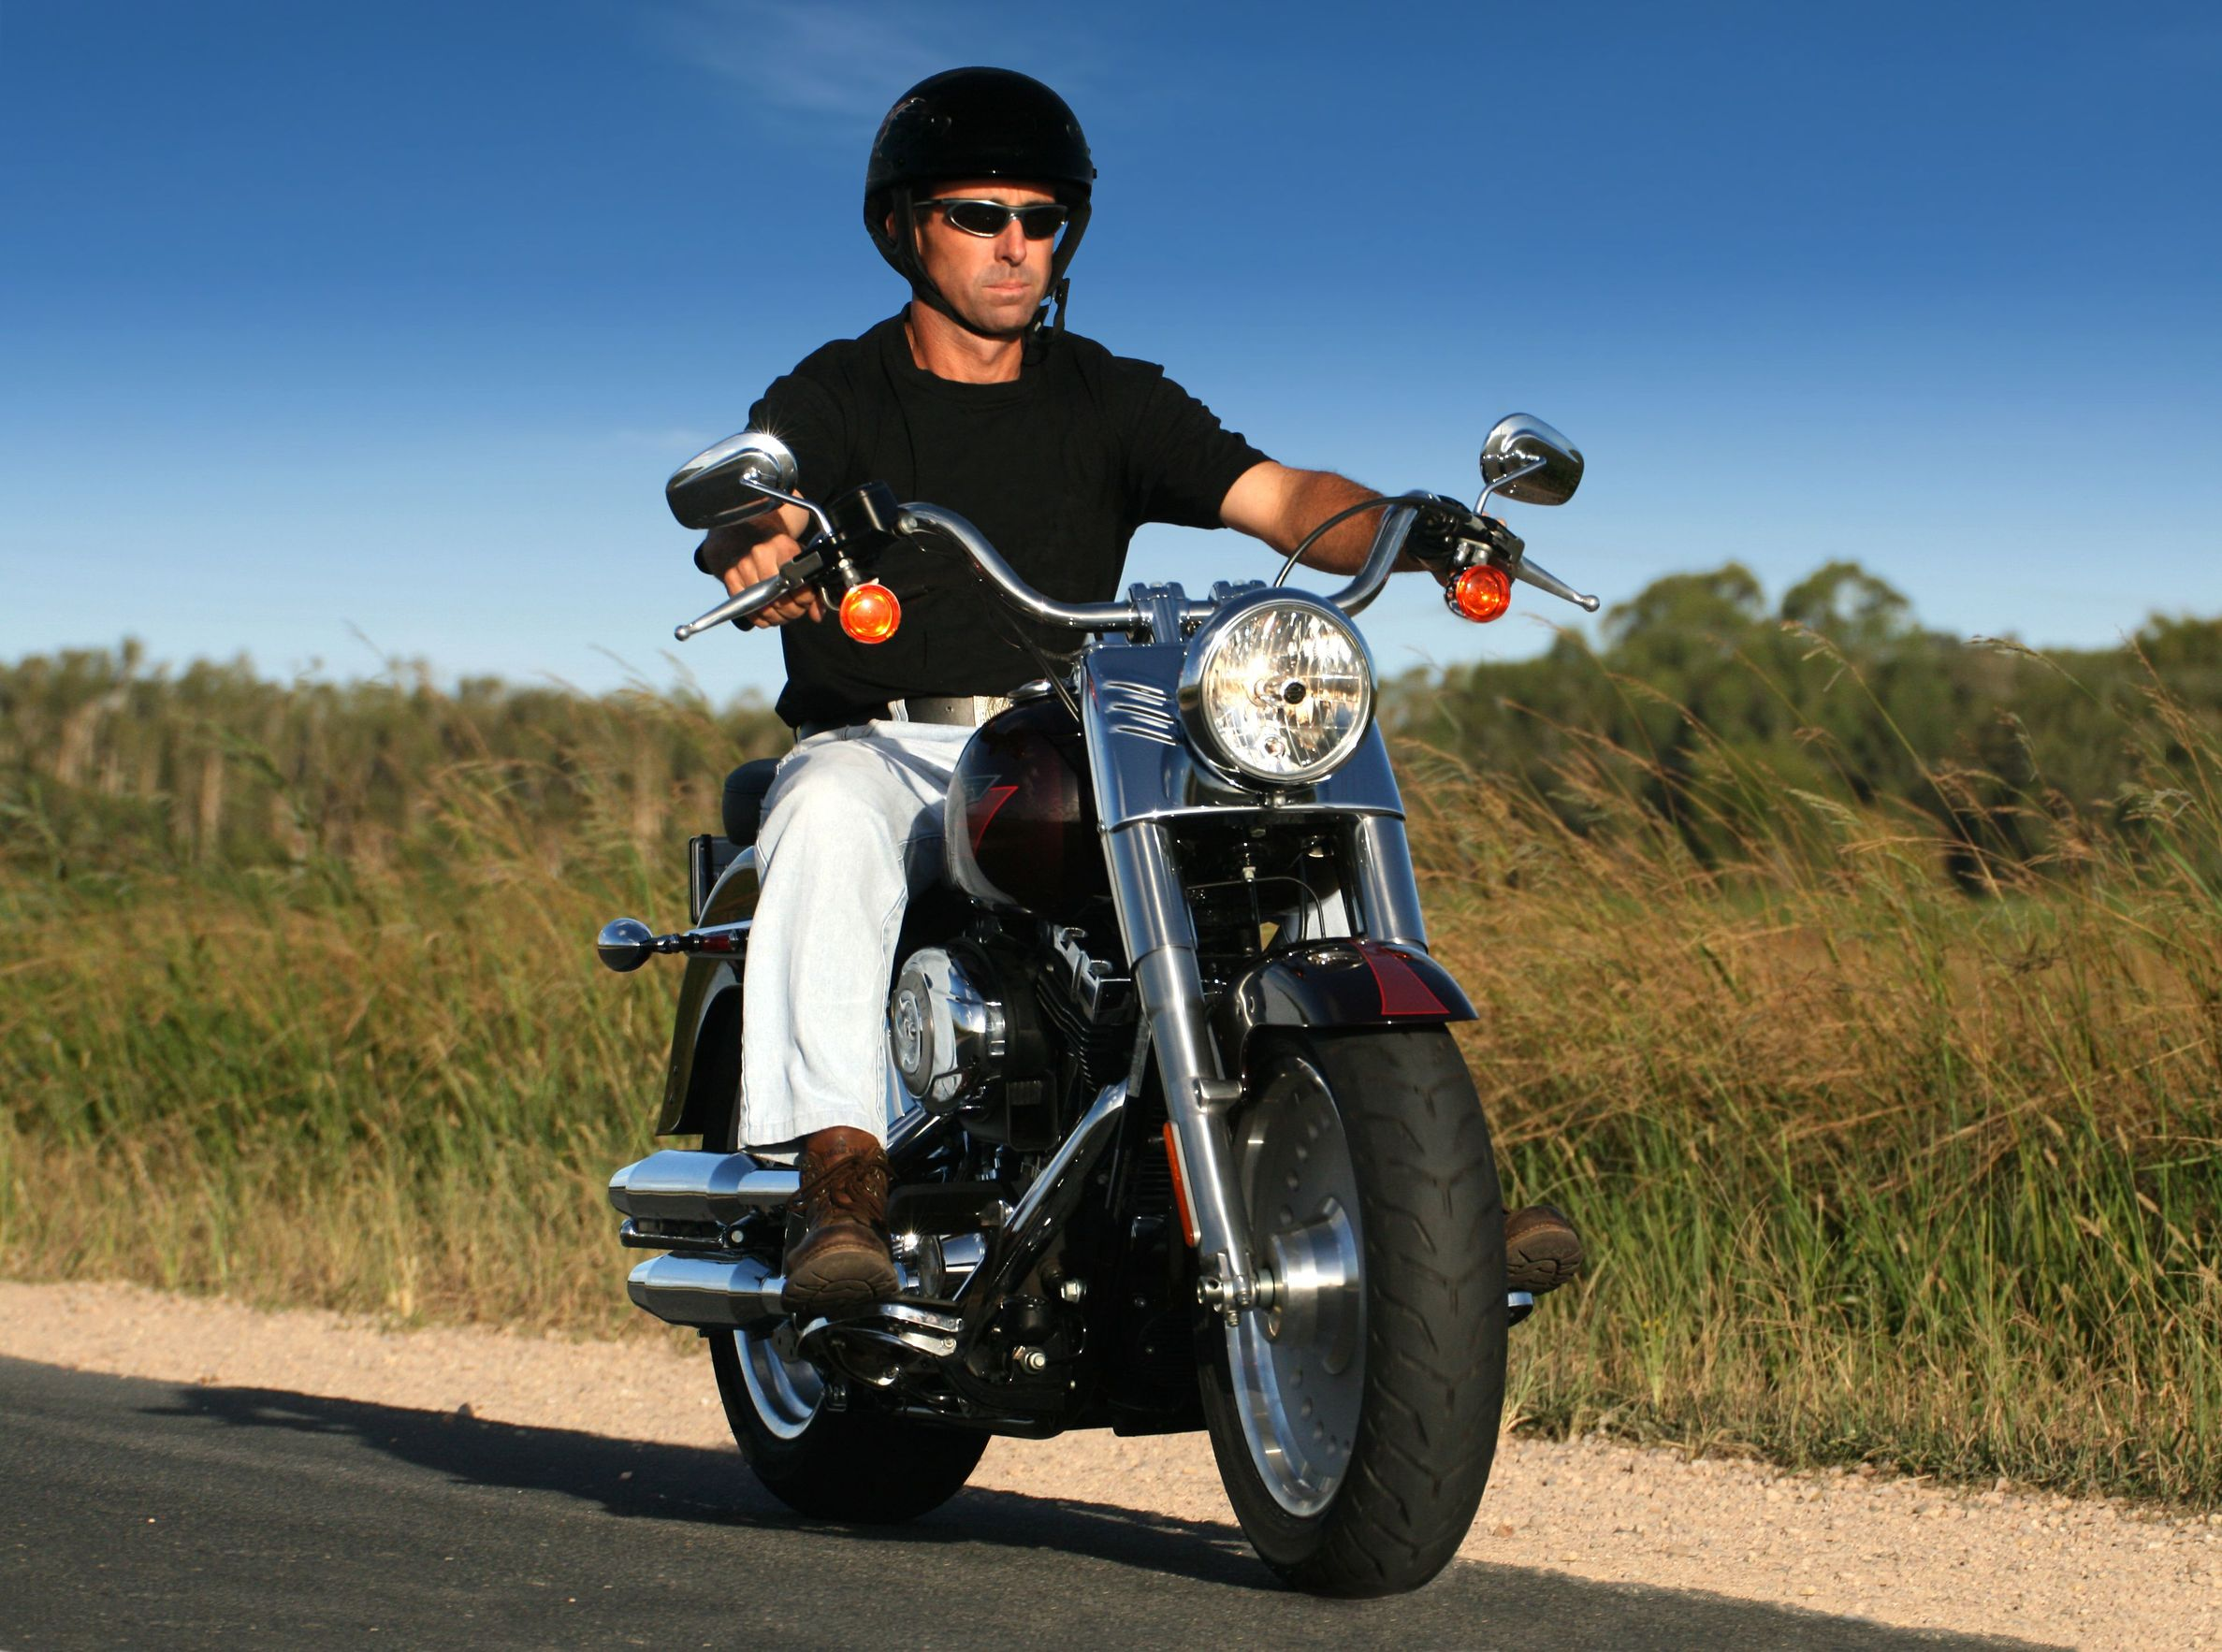 See Beautiful South Florida with Motorcycle Rental West Palm Beach